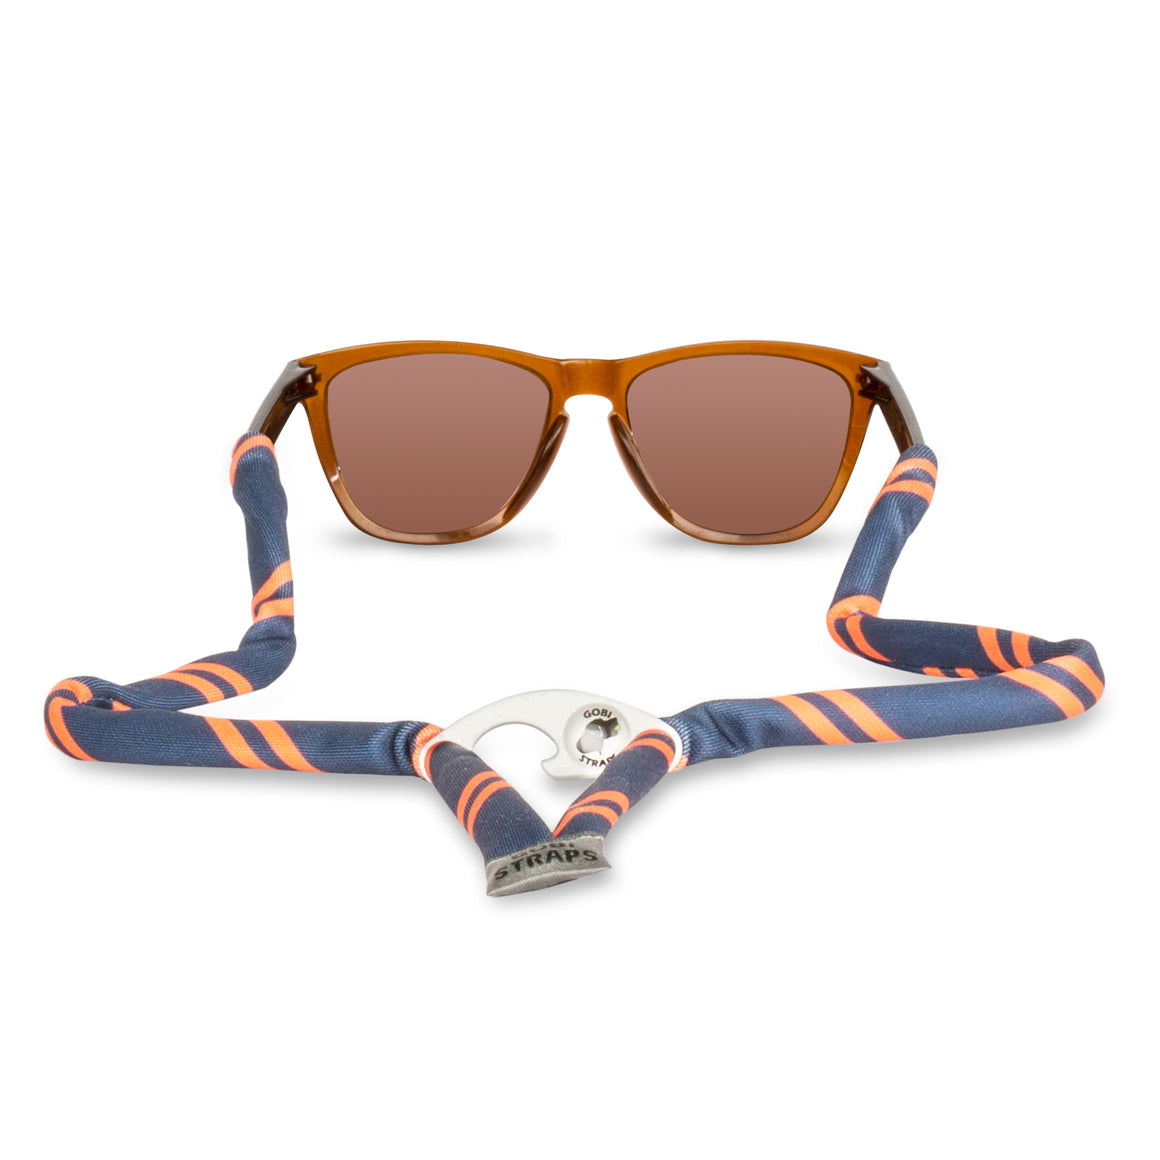 Navy & Orange Sunglass Straps